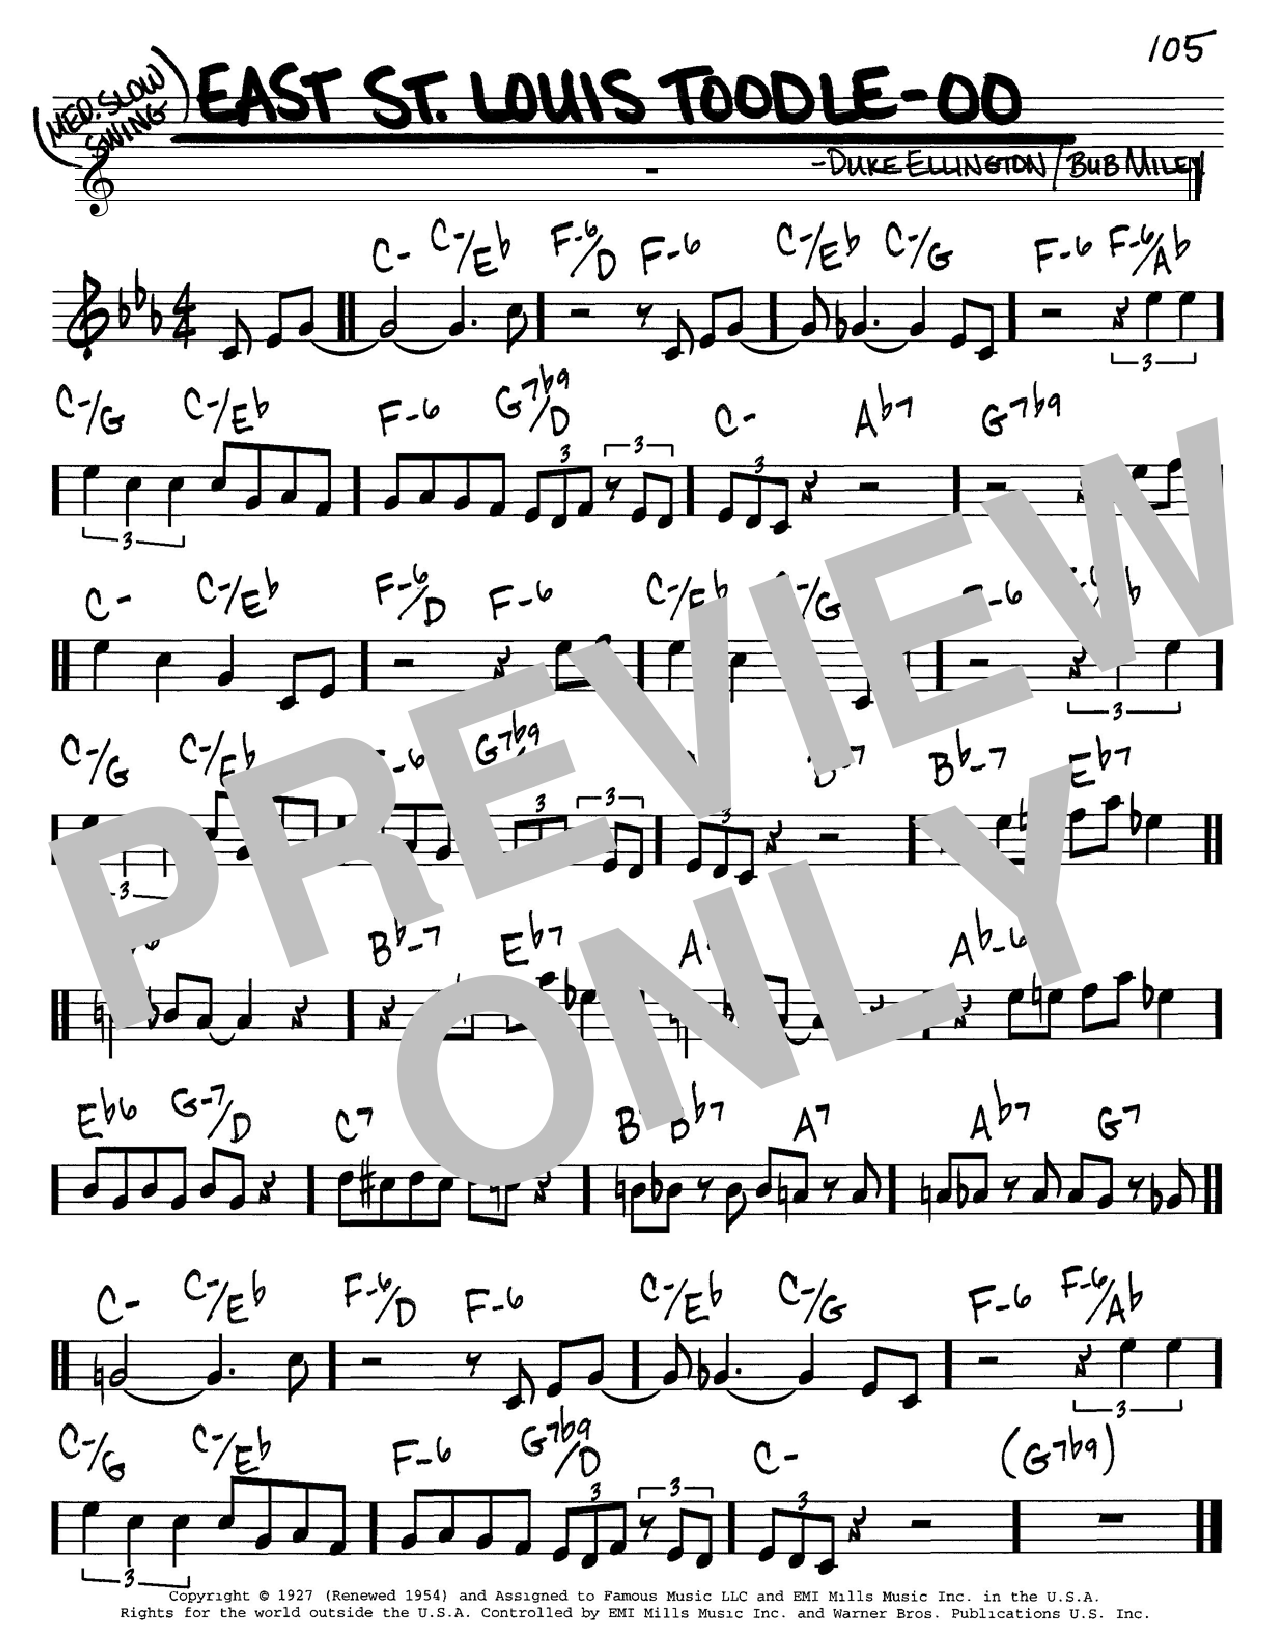 Duke Ellington East St. Louis Toodle-oo sheet music notes and chords. Download Printable PDF.